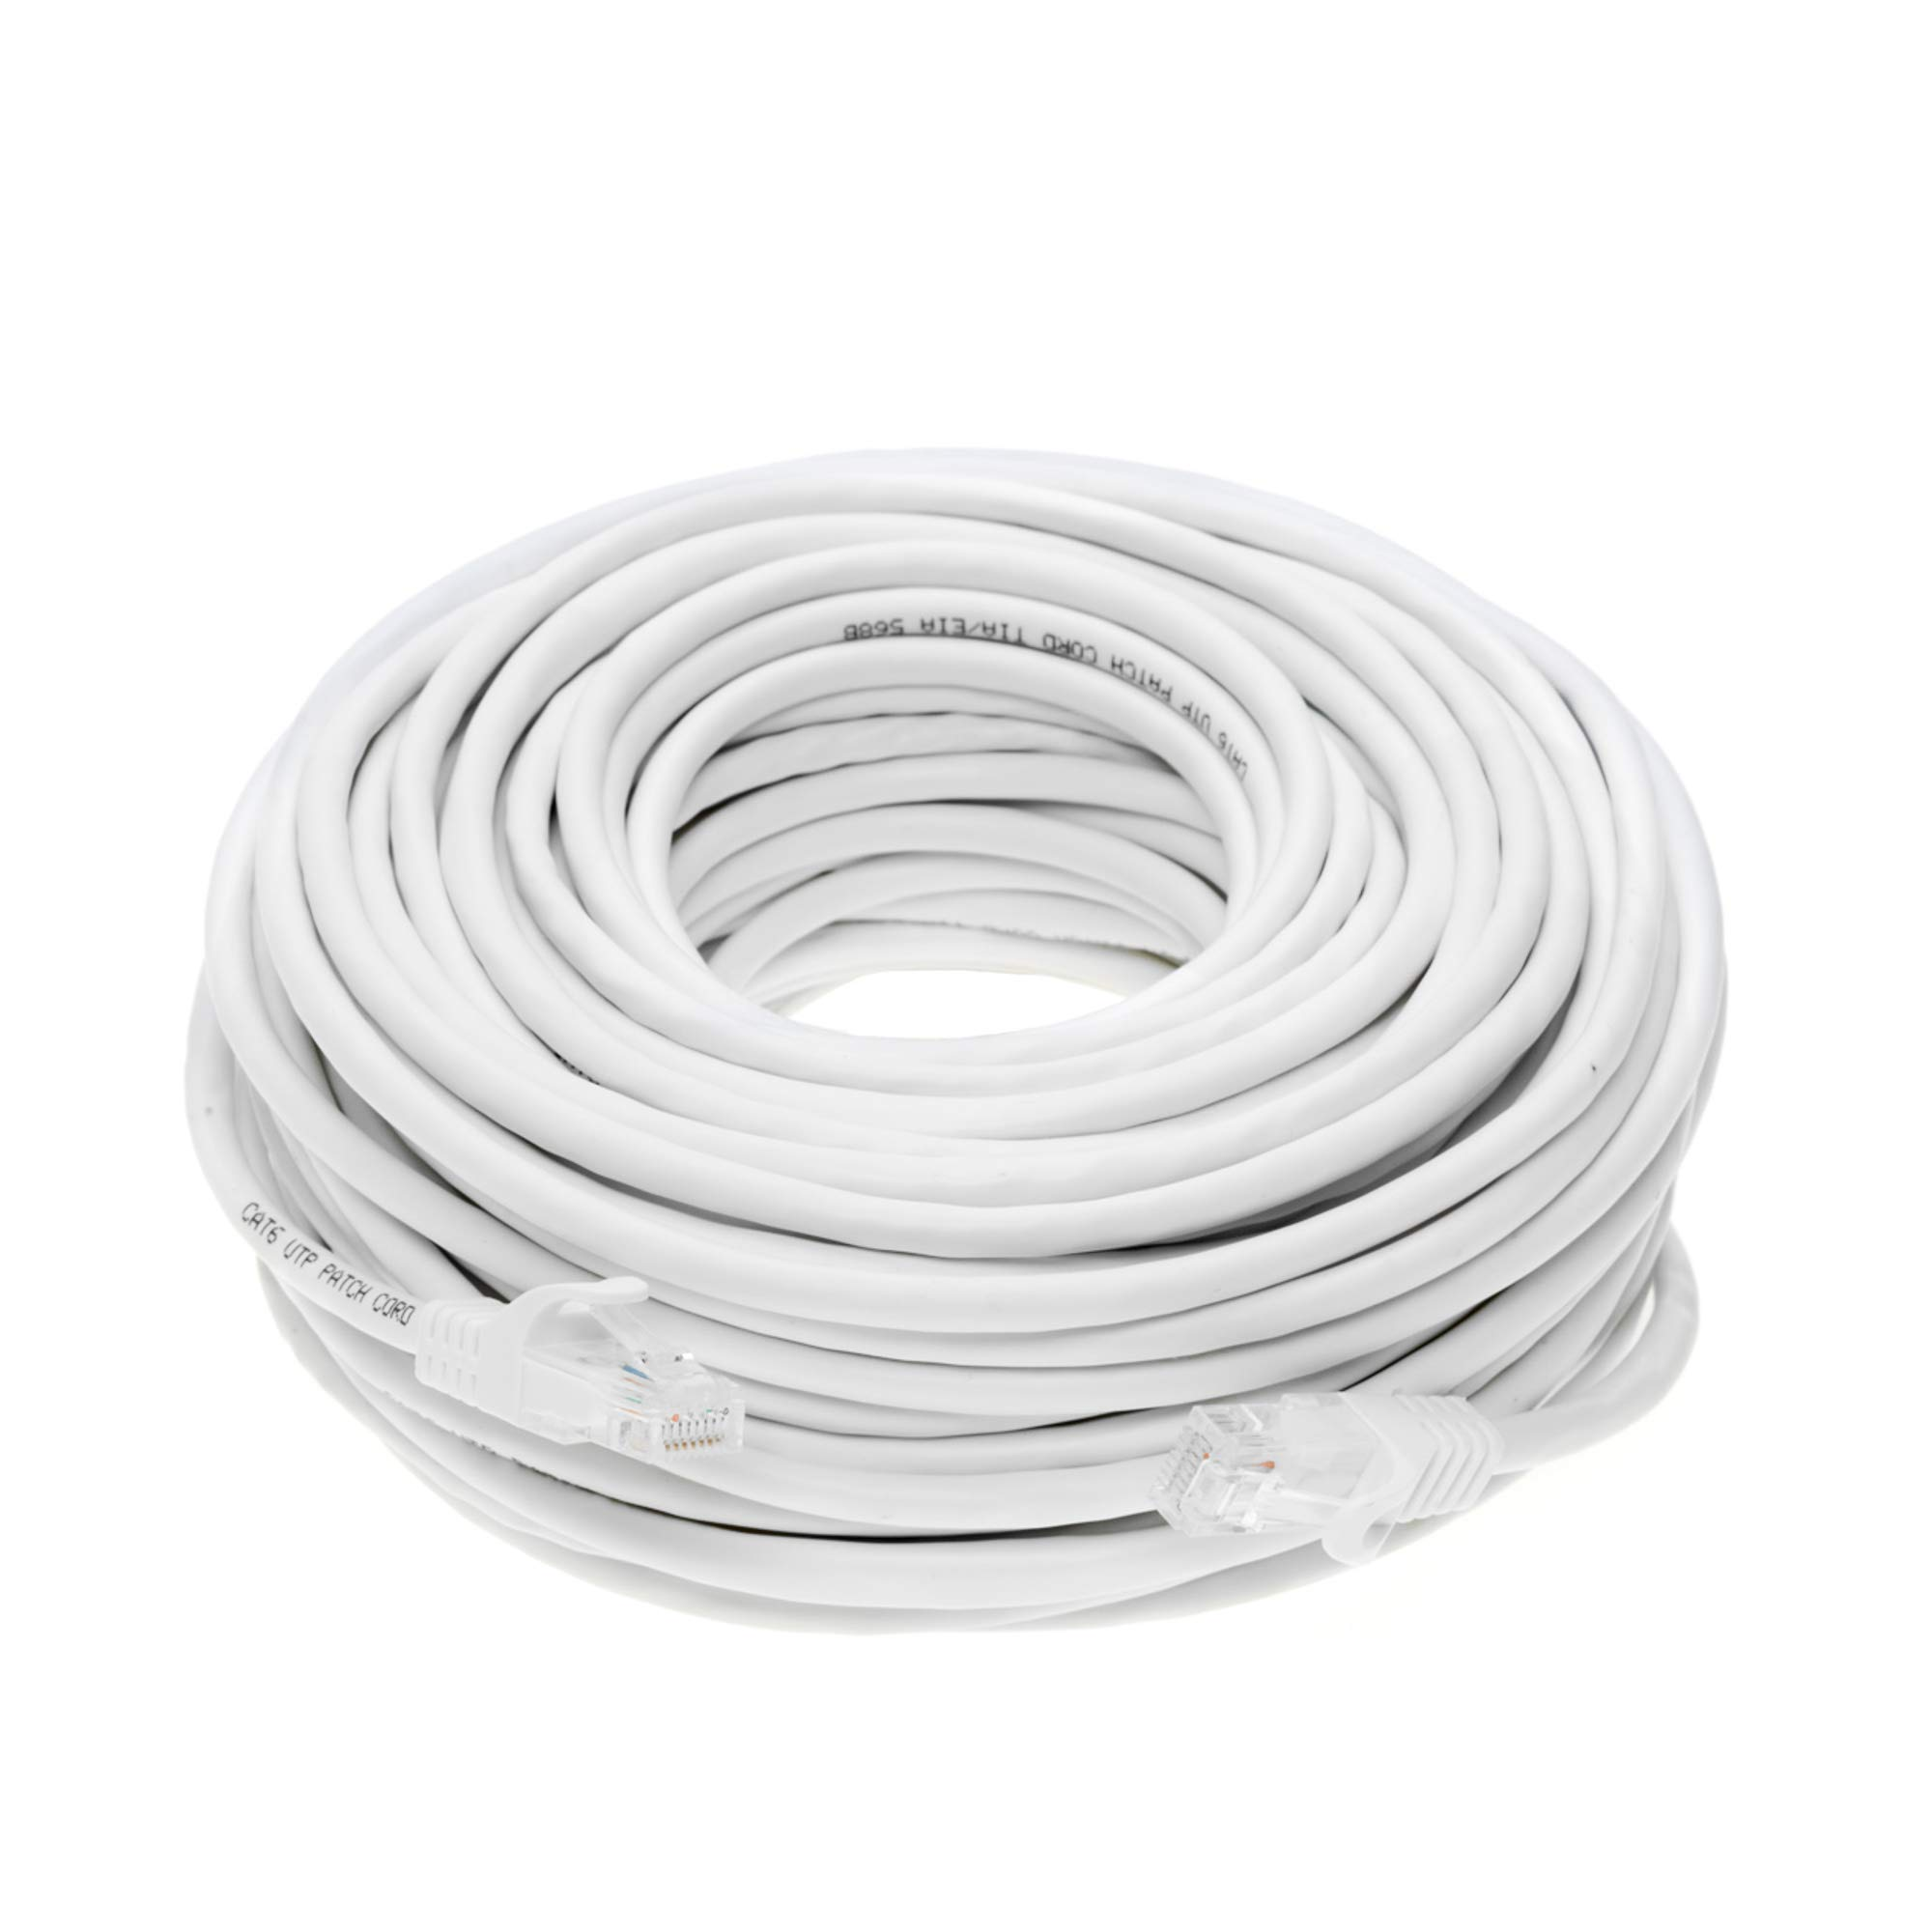 Cat6 100FT Networking RJ45 Ethernet Patch Cable Xbox  PC  Modem  PS4  Router - (100 Feet) White by Cables Direct Online